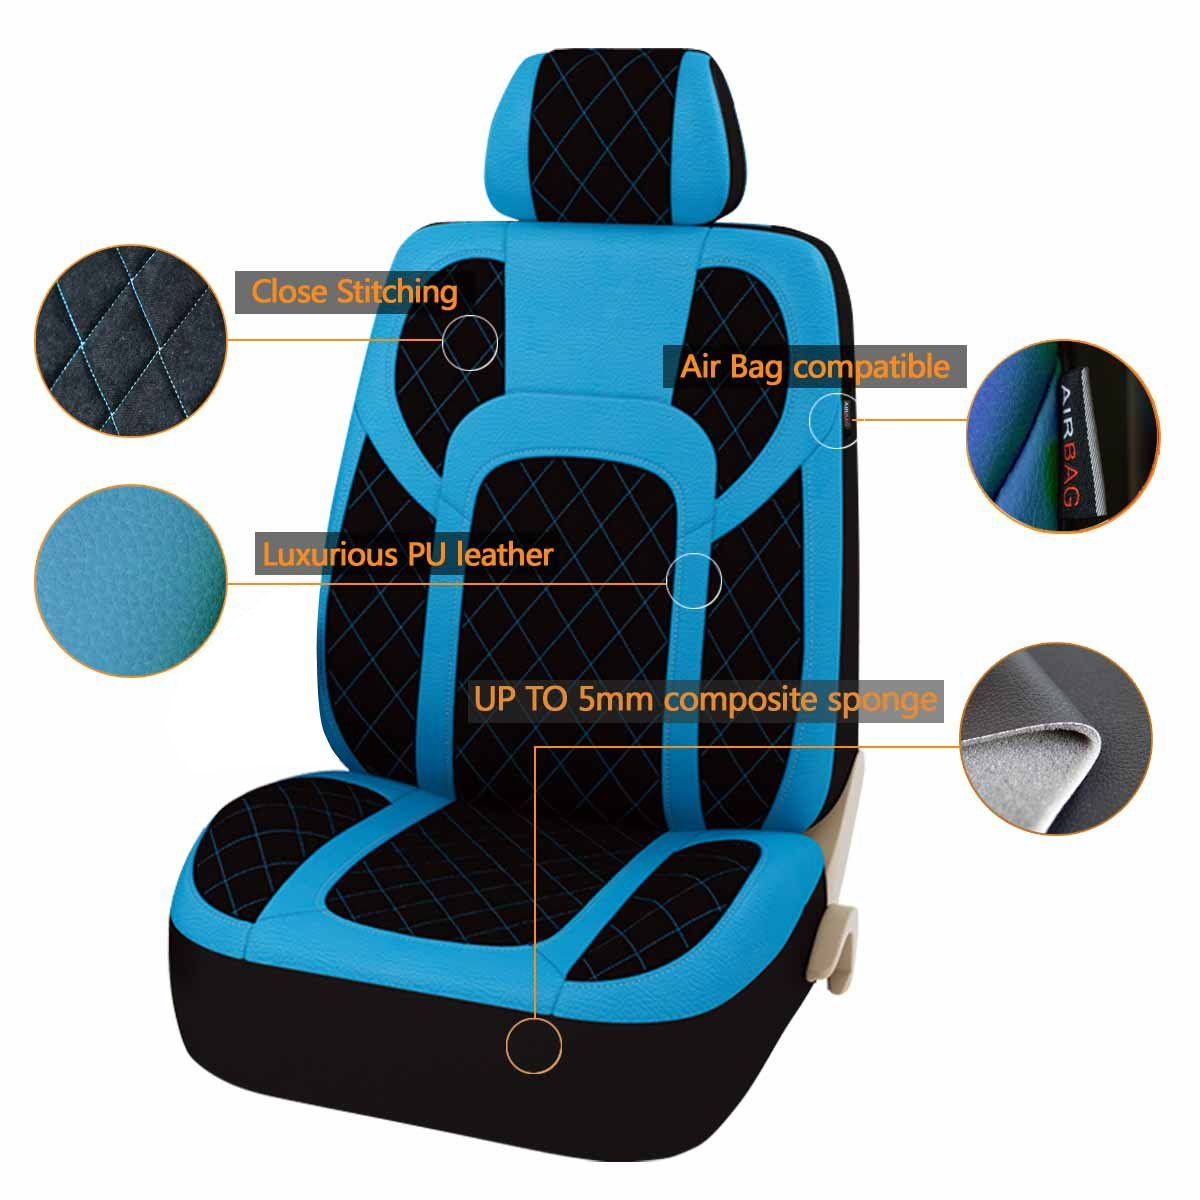 13PCS Extreme Luxurous PU Leather Automotive Universal Seat Covers Set Package-Universal fit for Vehicles,Cars,SUV With 5mm Composite Sponge Inside,Airbag Compatible CAR PASS Black and Blue